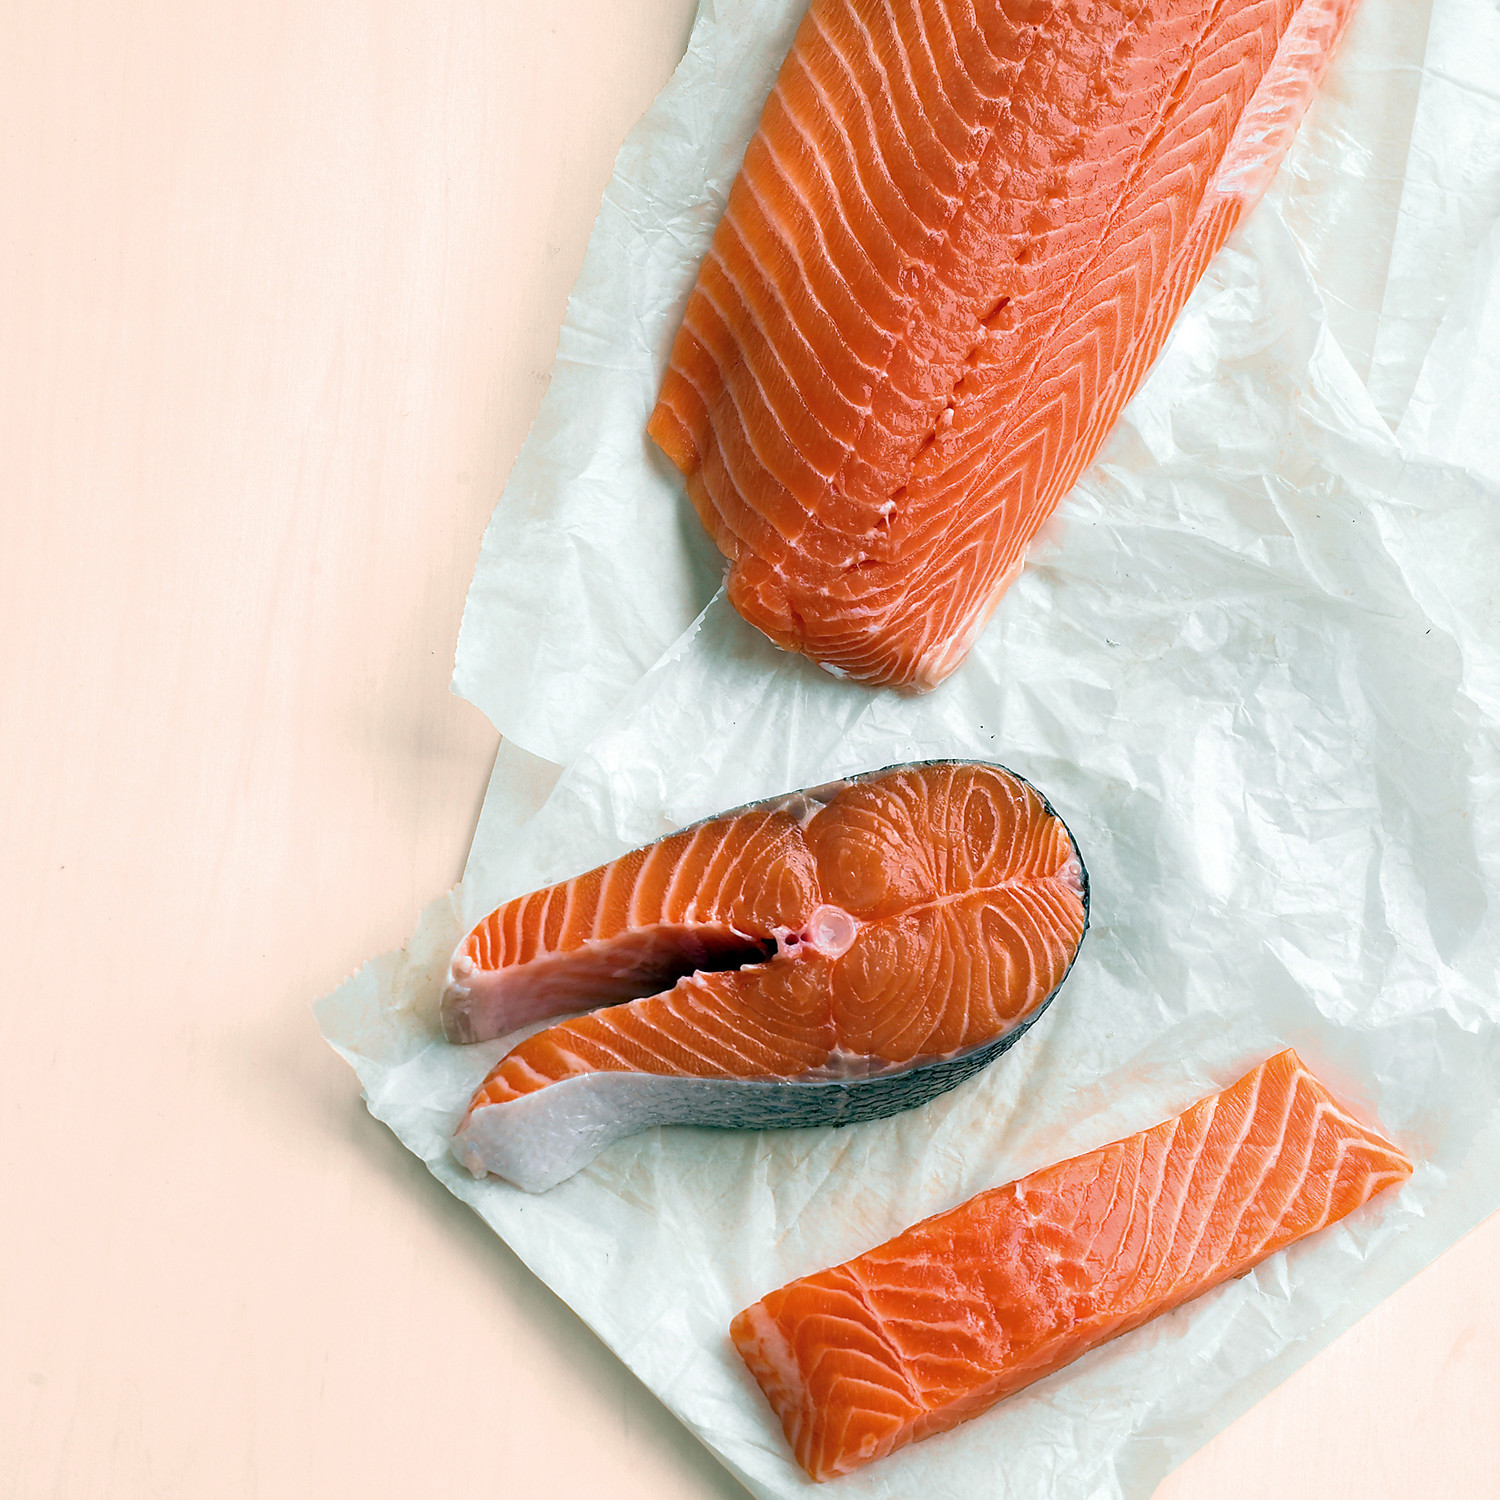 Salmon Recalled in 23 States Due to Possible Botulism Poisoning